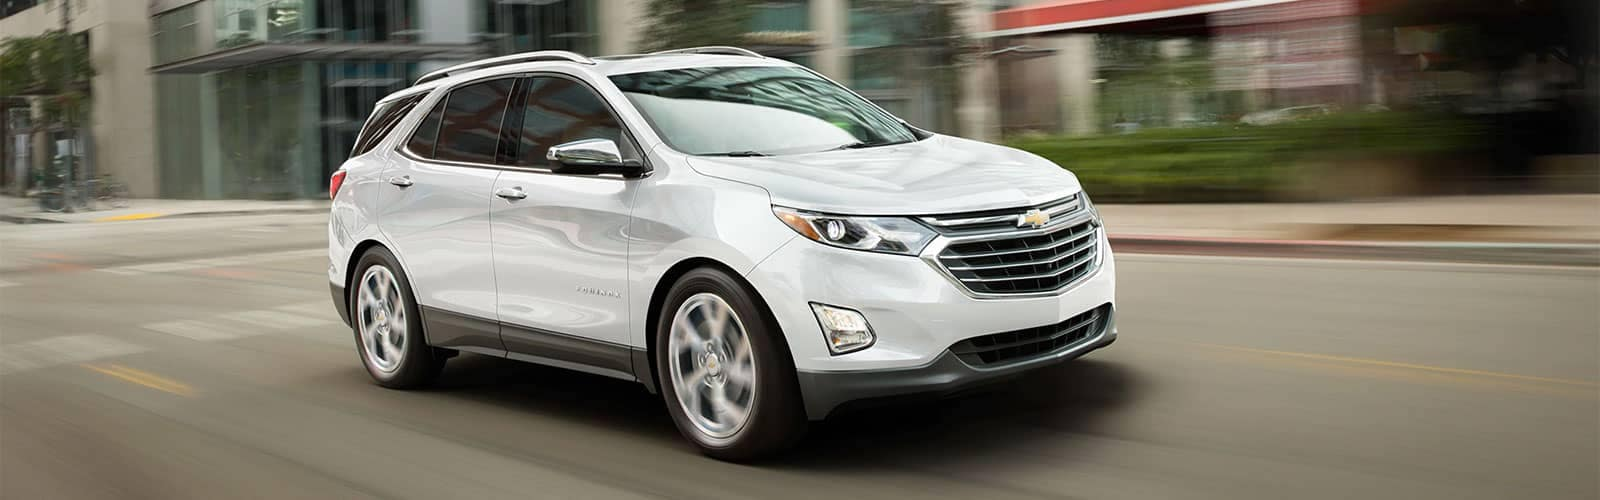 2019 Chevrolet Equinox Driving in White